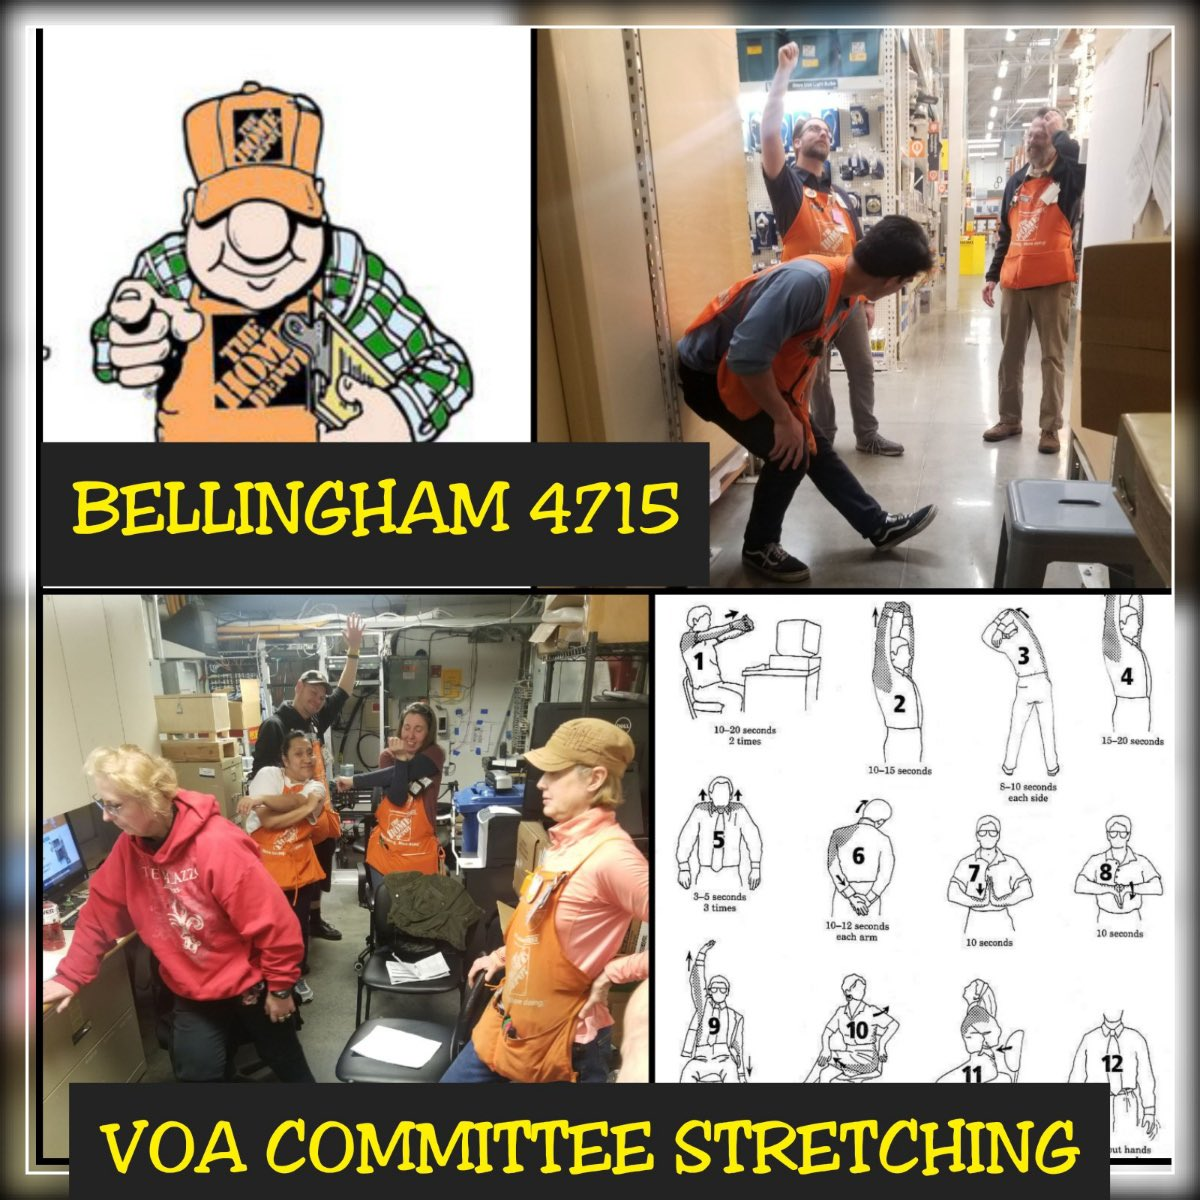 In Bellingham Safety is personal. It's time for our 2pm Stretch and Flex. #safetyispersonal @Henderson20Dave @TracieD317pic.twitter.com/zLPXvd2jZE